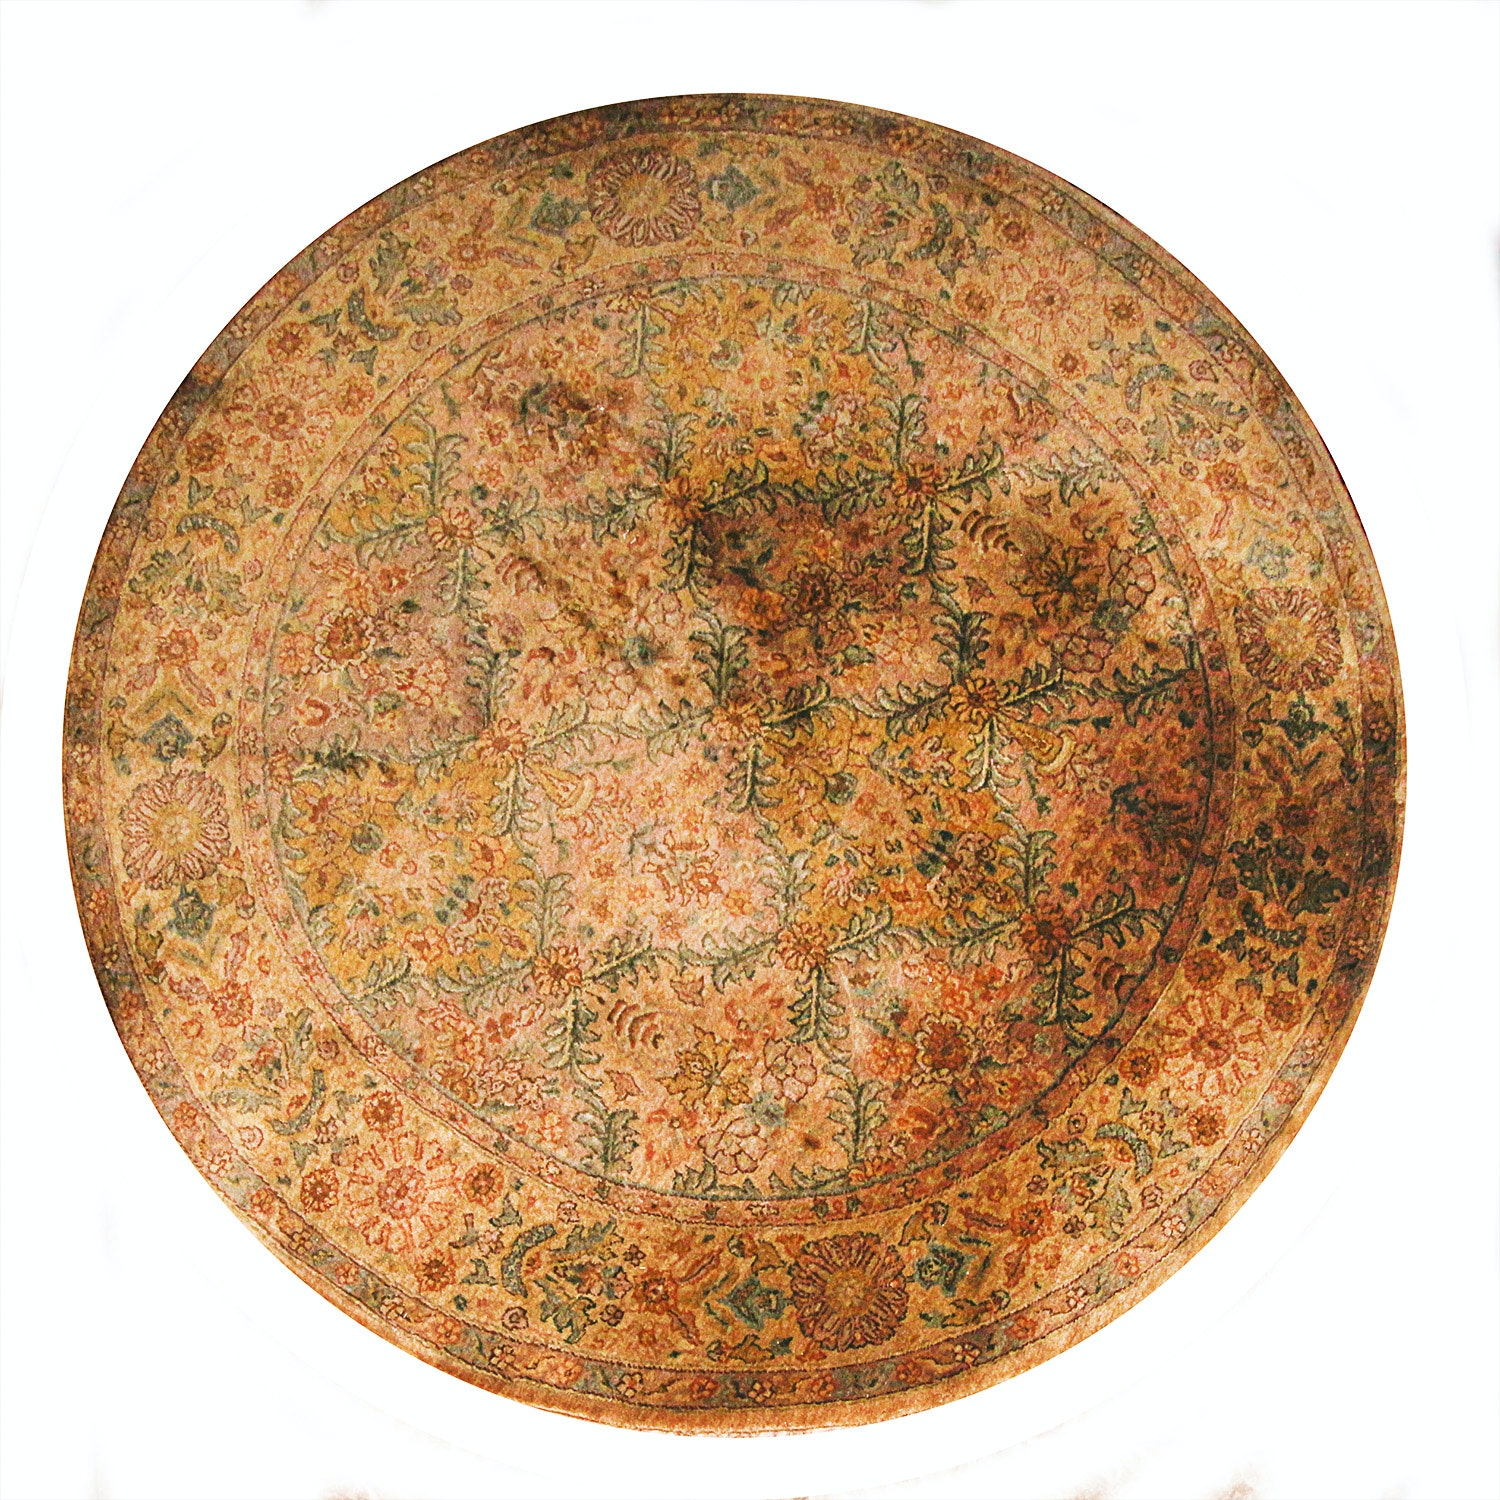 Hand Woven Indo-Persian Round Rug